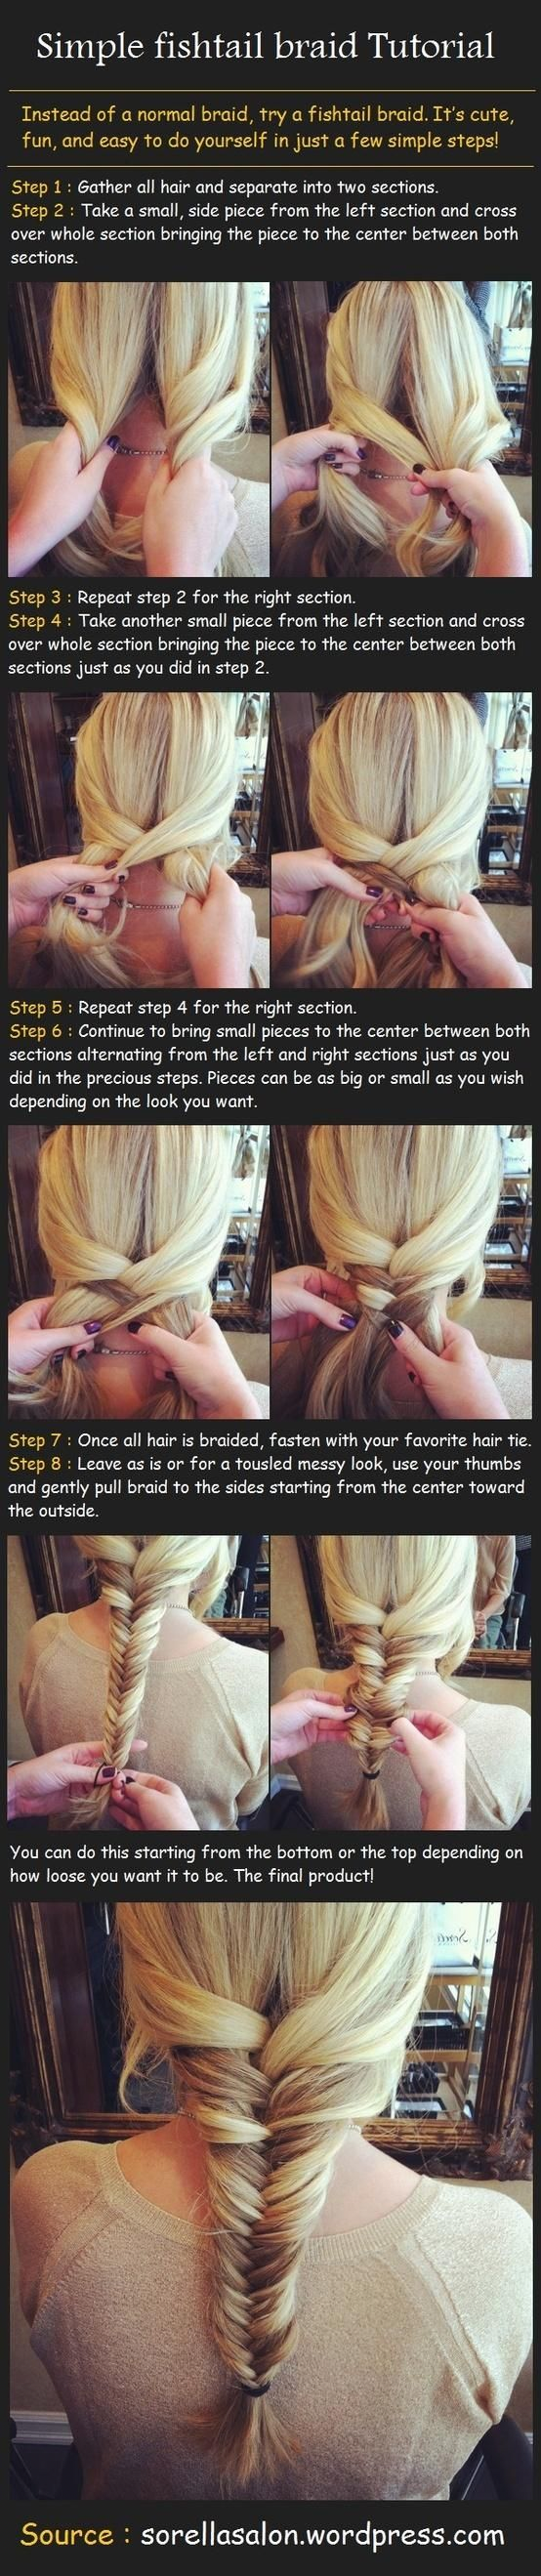 The least-confusing fishtail directions I've seen.